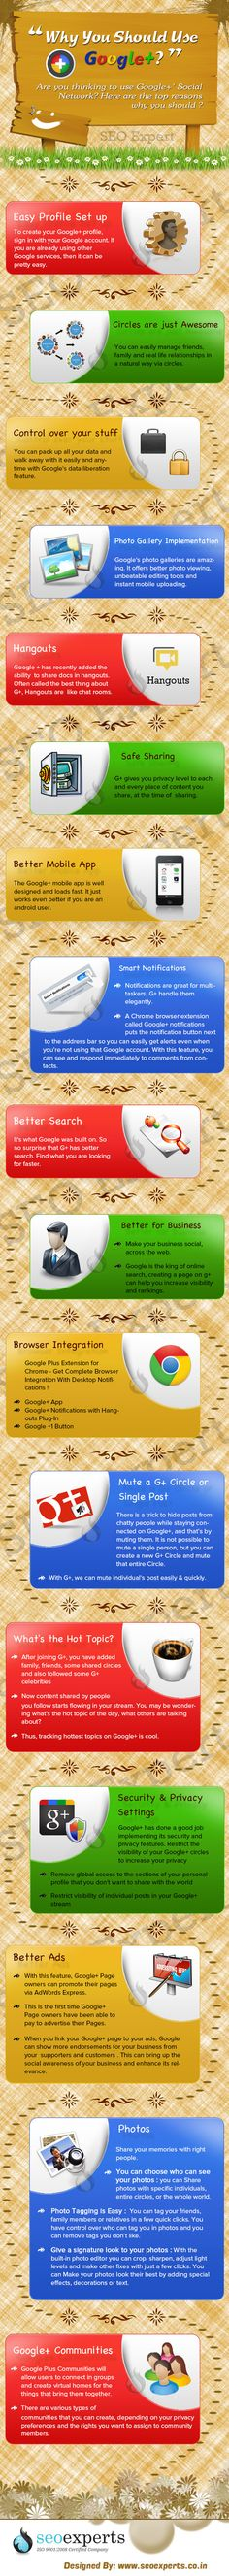 Are you still looking for reasons to use #Google+ for all your social networking requirements? This infographic highlights reasons why Google+ is valuable and how it will get you to make the jump. You have lots of options at g+ such as hangouts, Circles, and even much more. Its bit professional because people use Google+ pages for business. Google tries to keep professionalism and entertainment apart. Take a look below and share your views with us. #socialmedia #googleplus